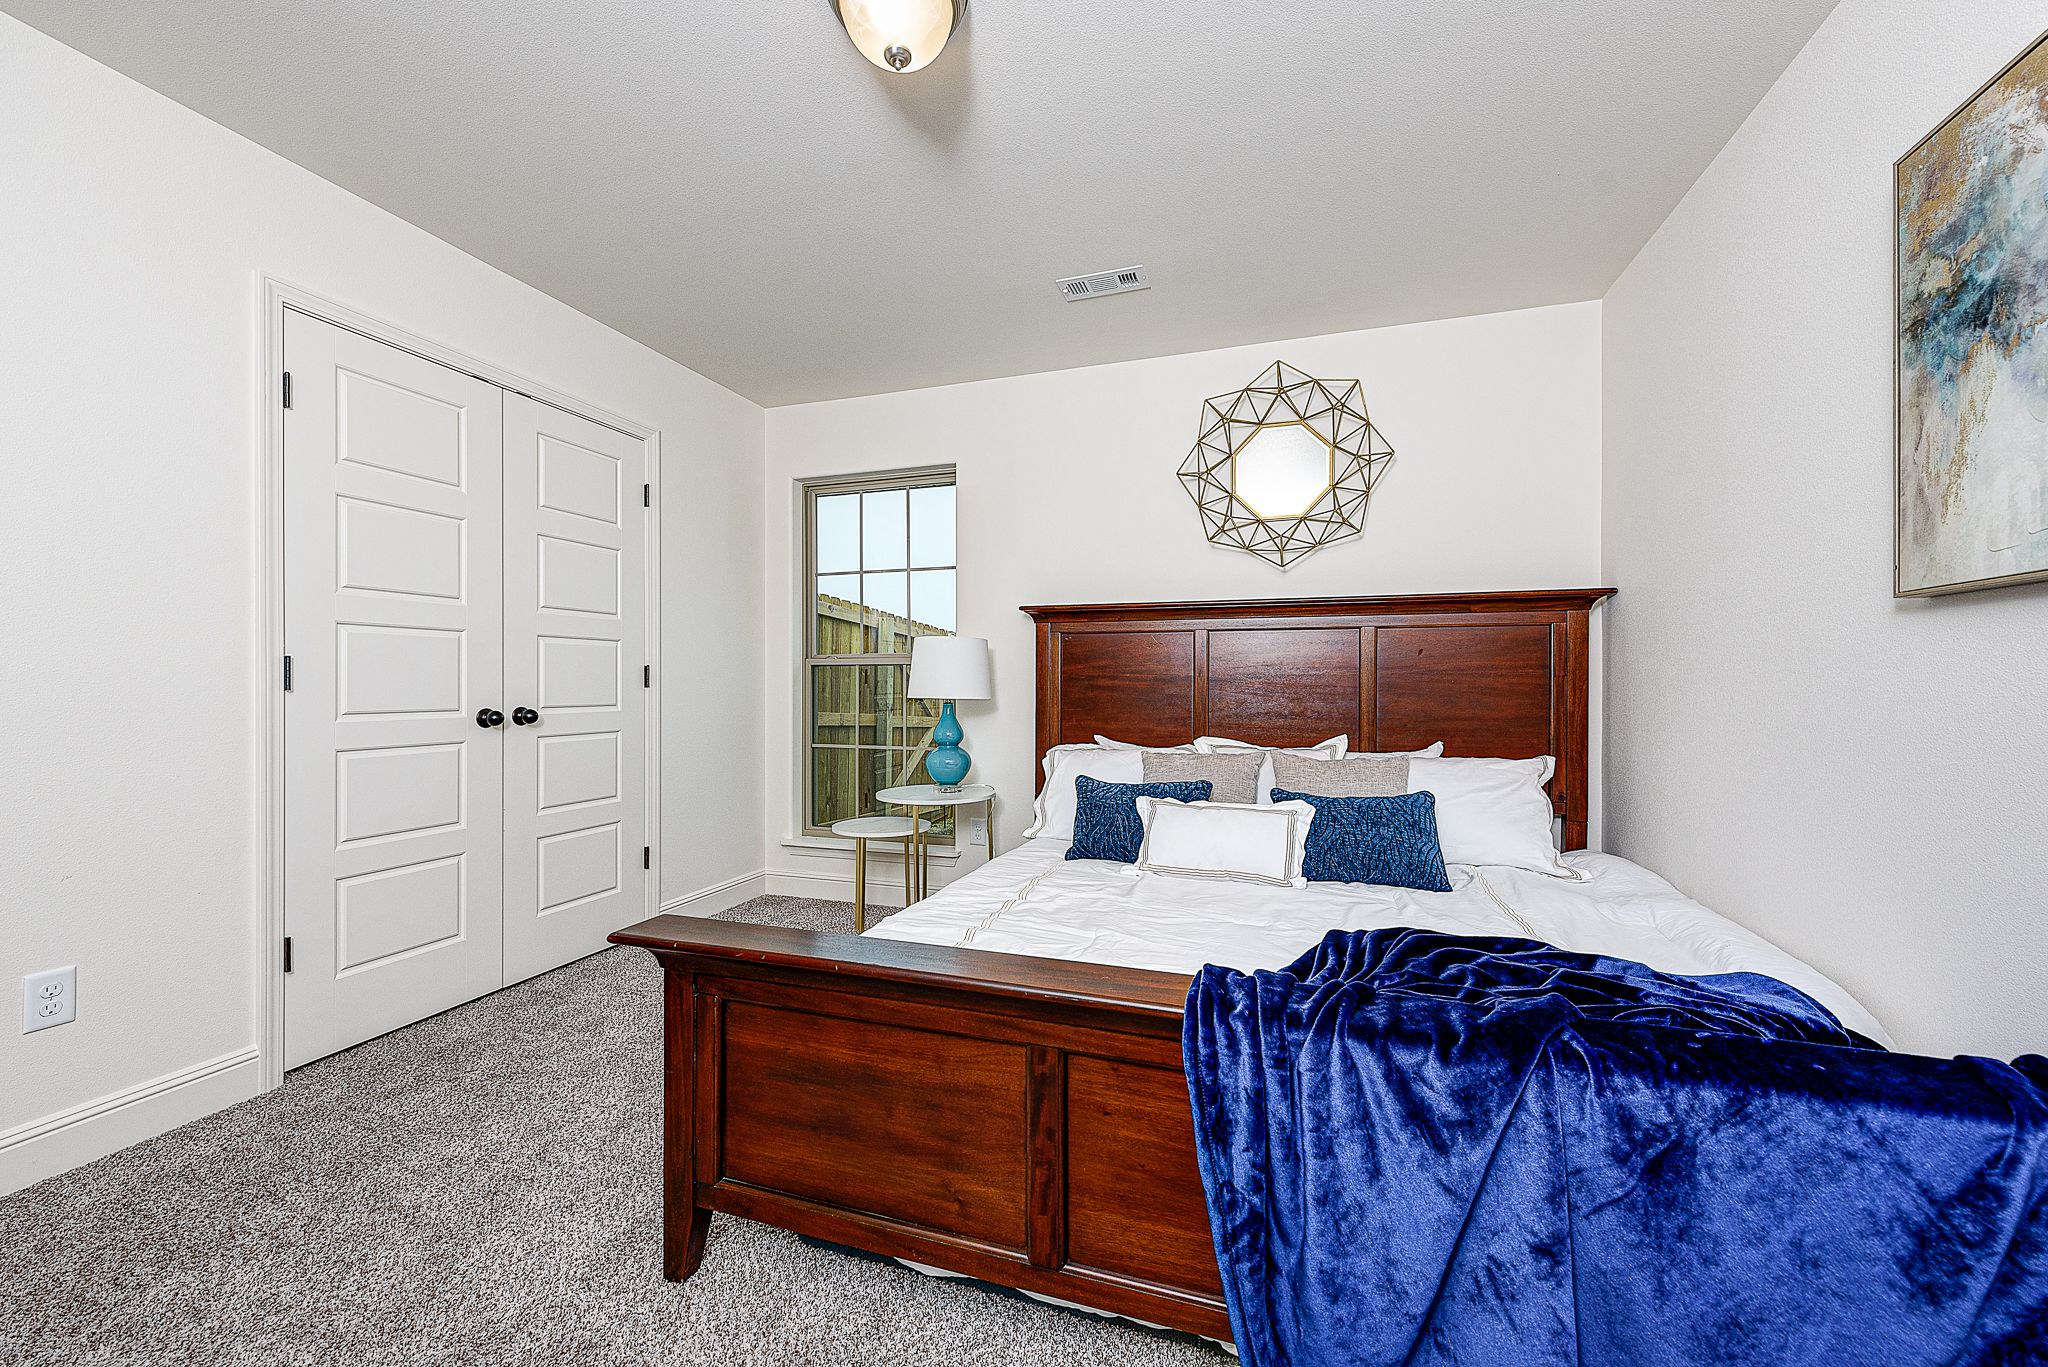 Bedroom featured in the 1650KI Series By Schuber Mitchell Homes in Fayetteville, AR